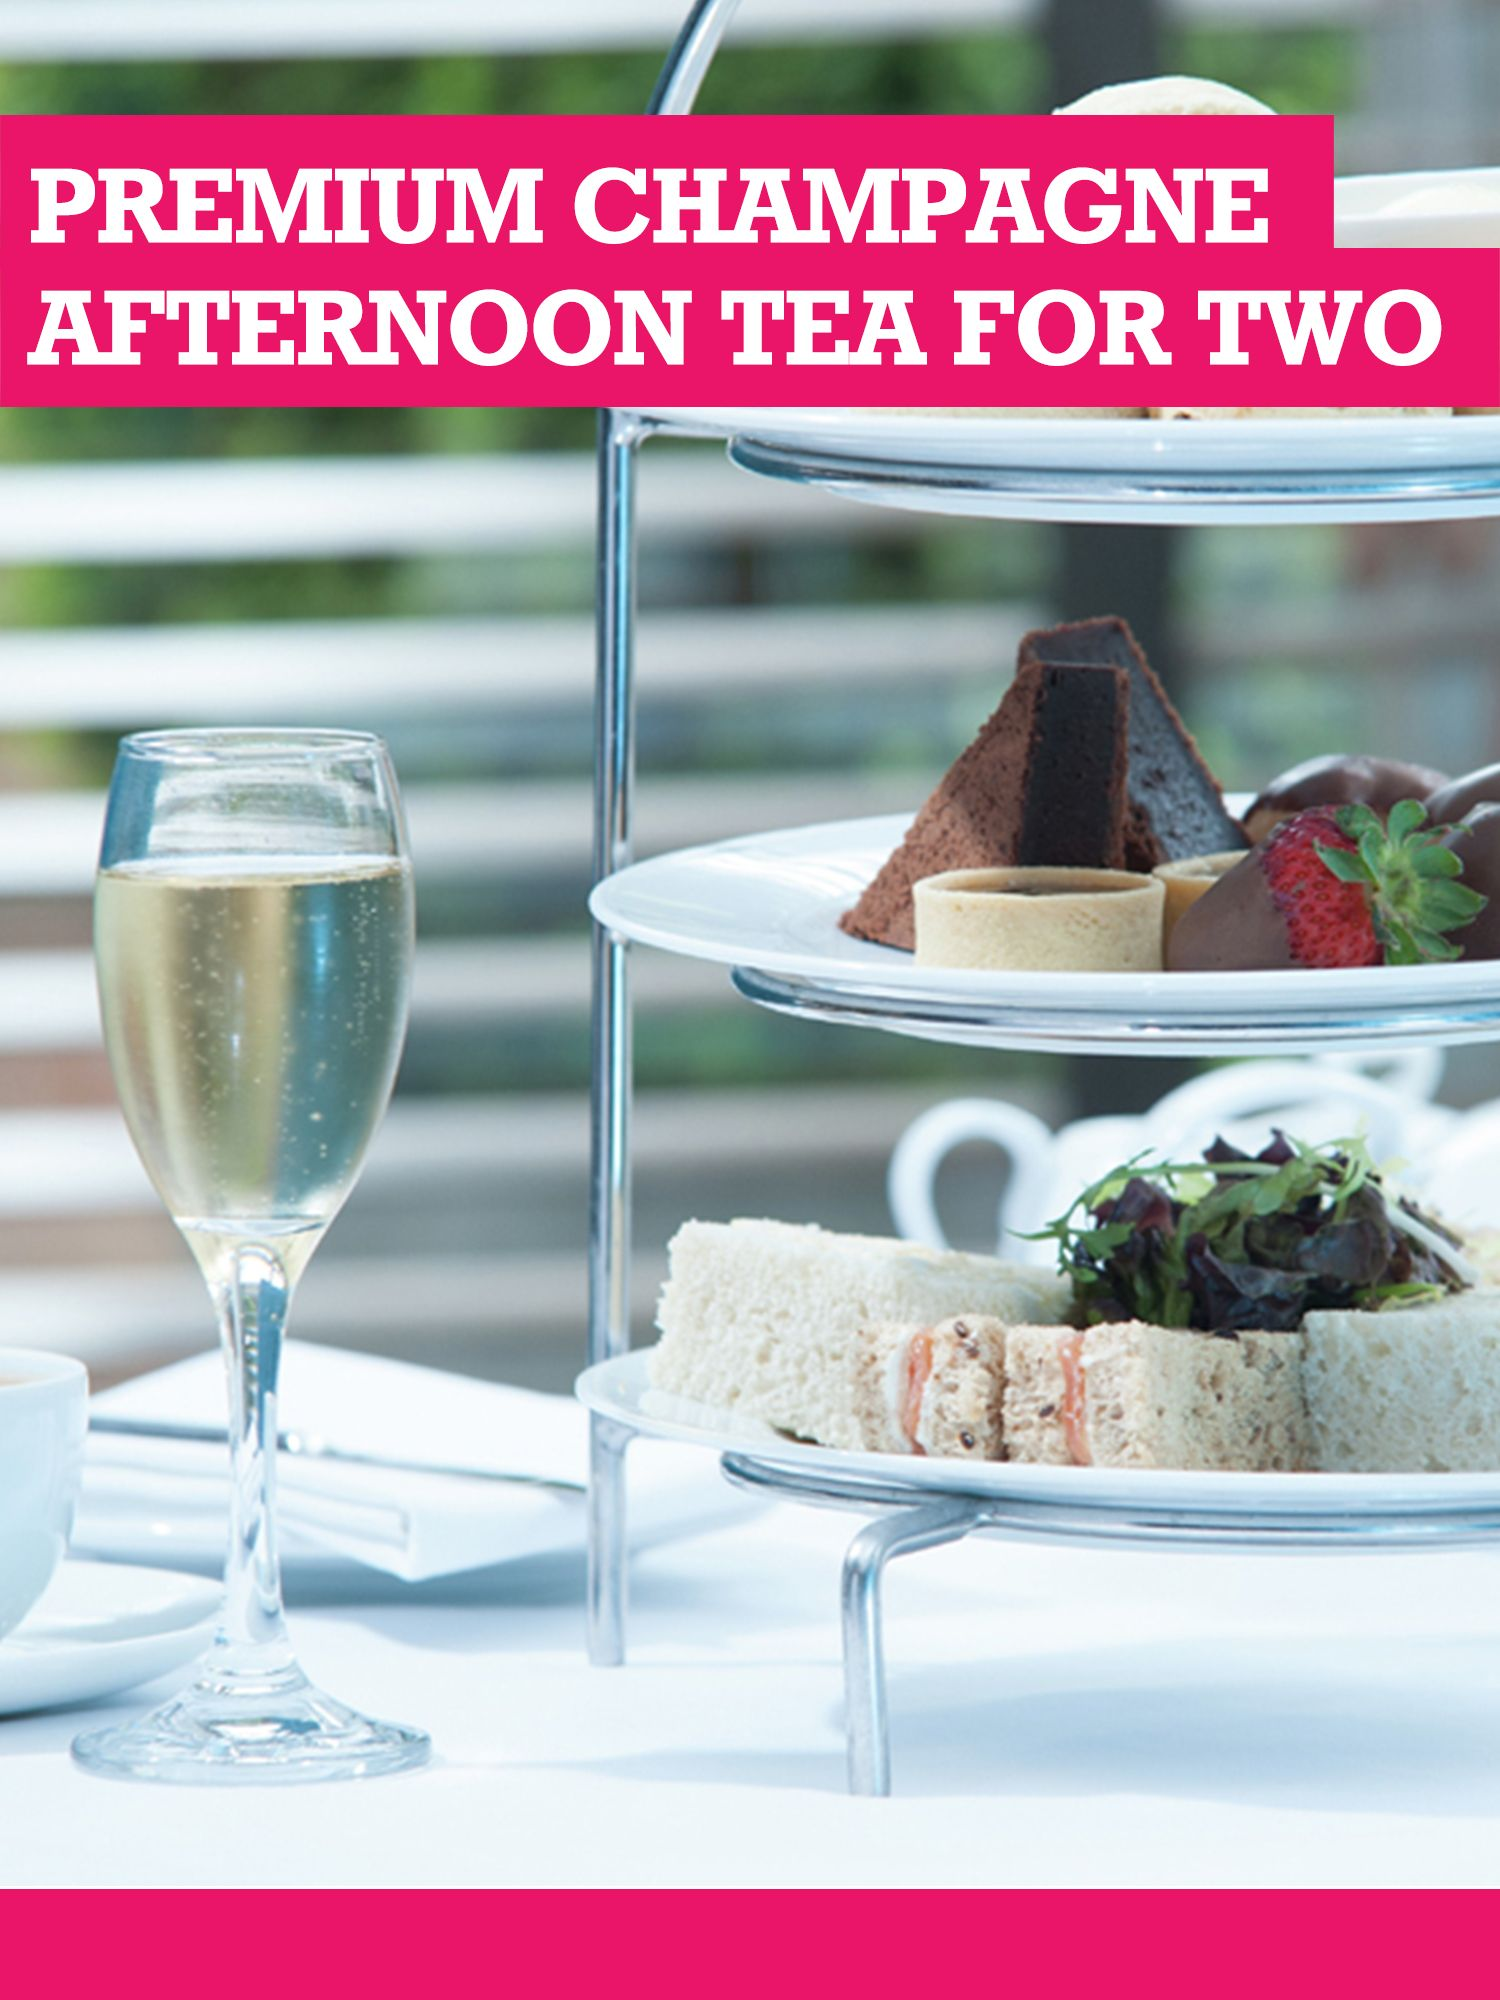 Buyagift Buyagift Premium Champagne Afternoon Tea for Two